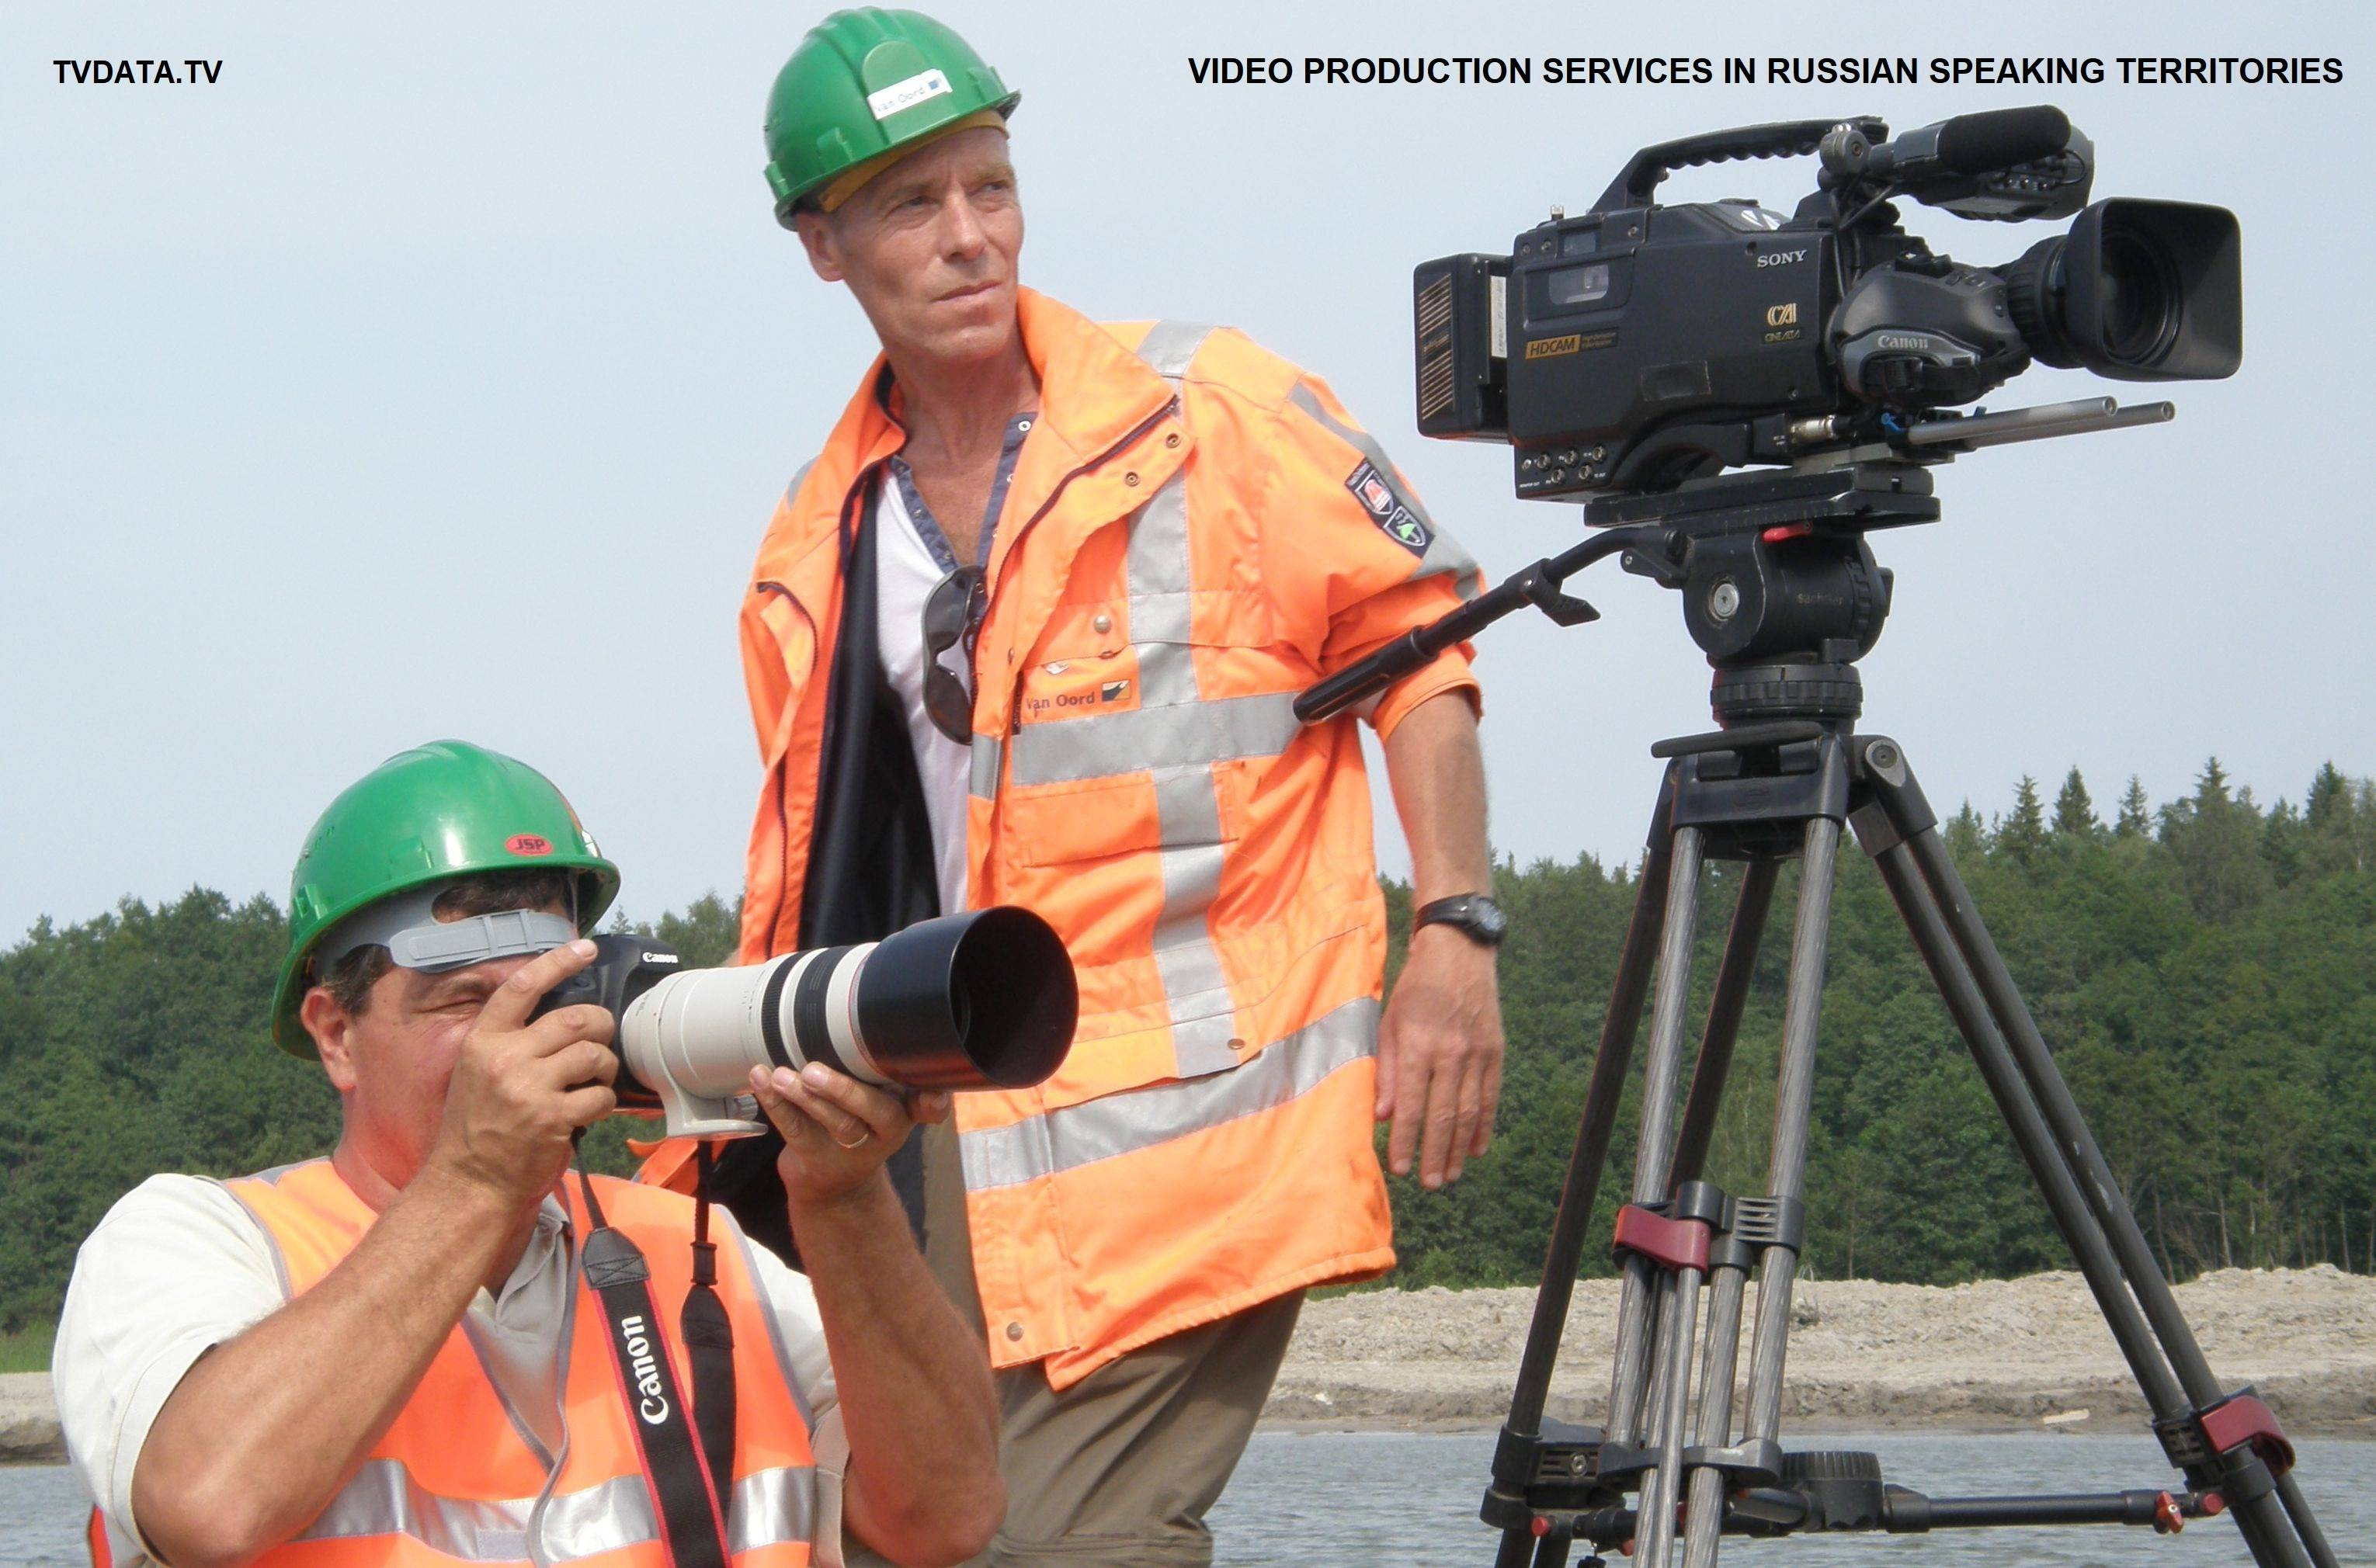 VIDEO PRODUCTION SERVICES IN RUSSIAN SPEAKING TERRITORIES